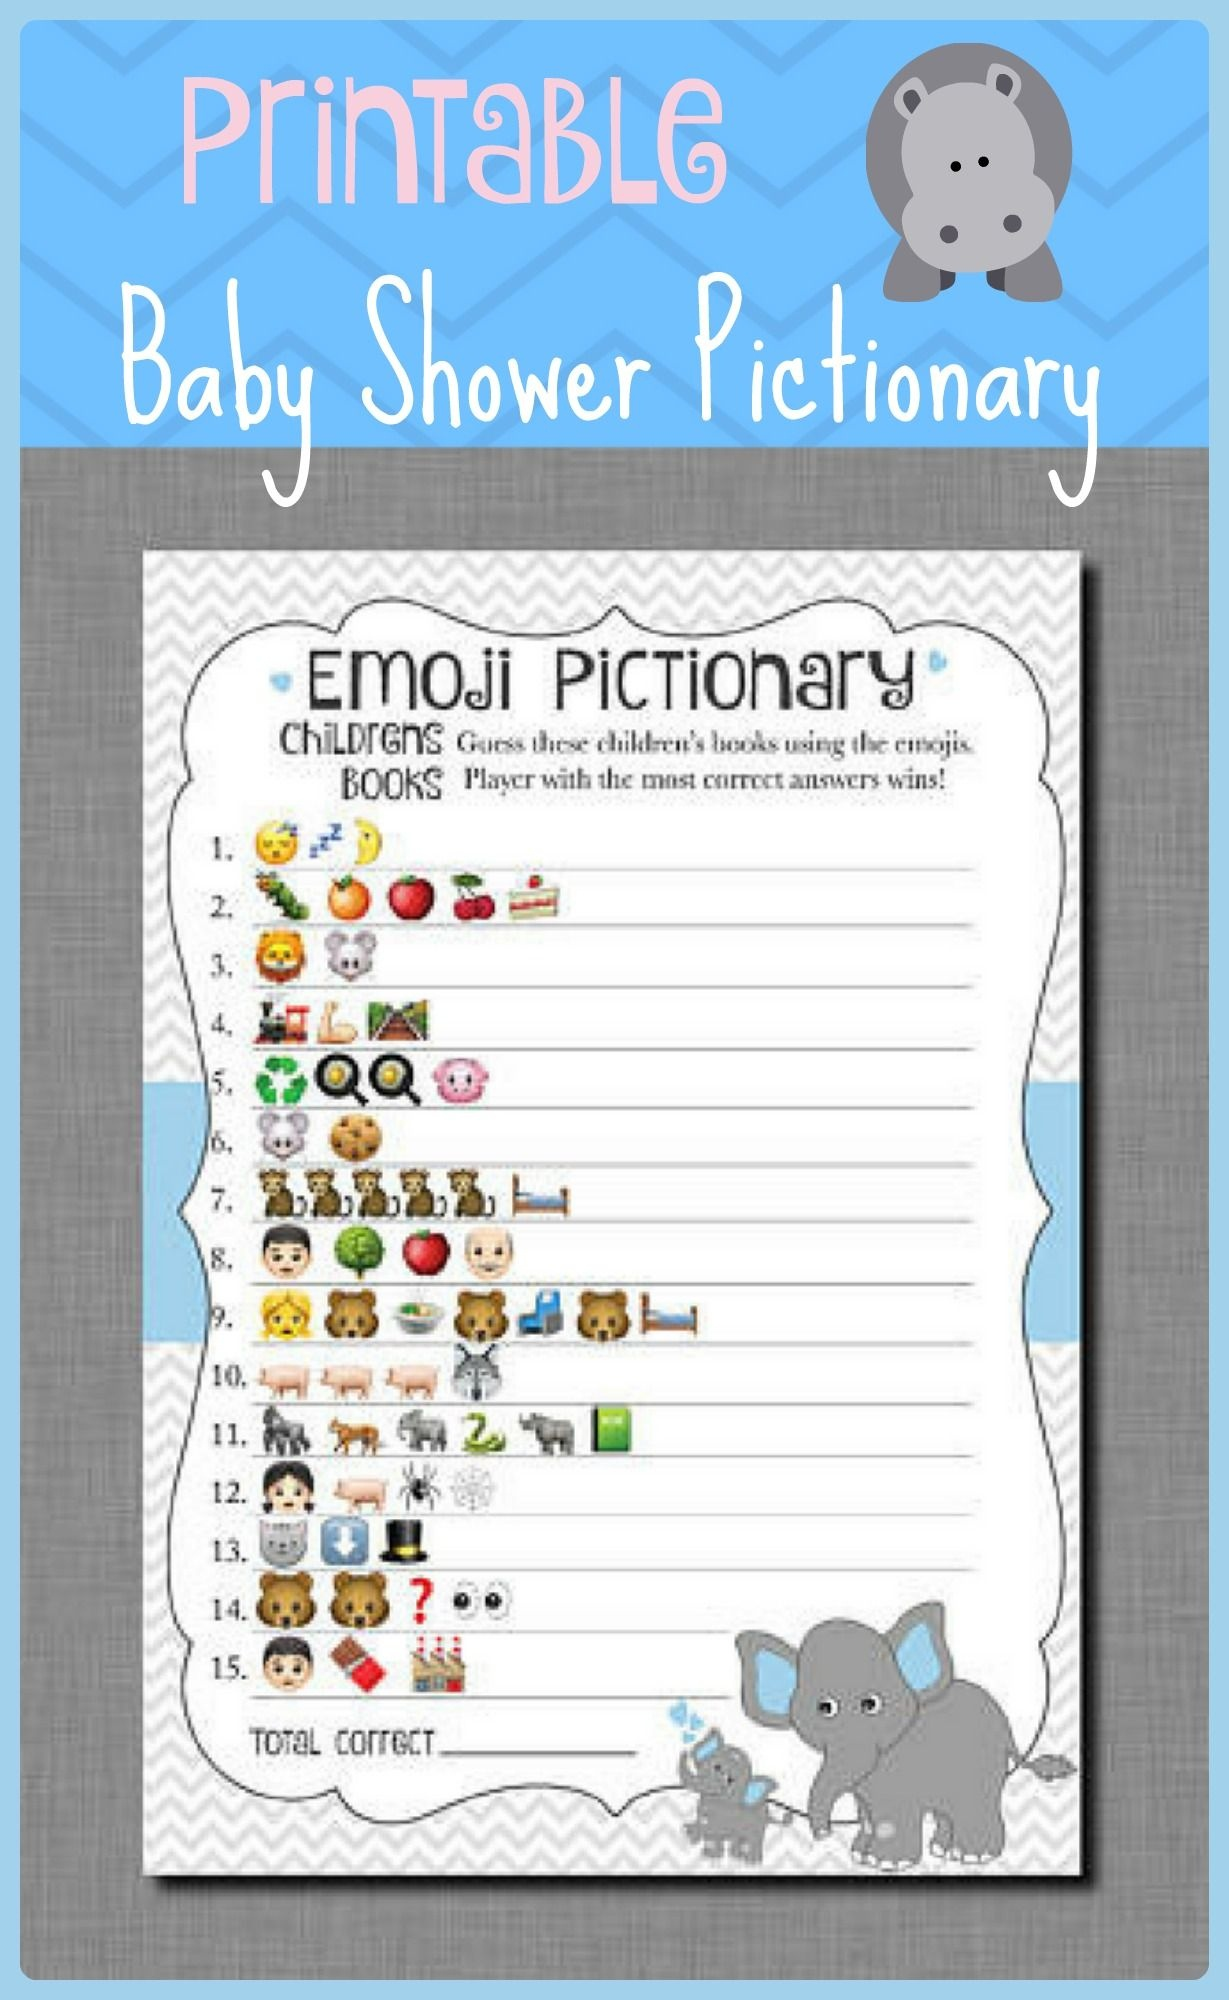 Emoji Baby Shower Game Printable, Elephant Emoji Pictionary - Emoji Baby Shower Game Free Printable